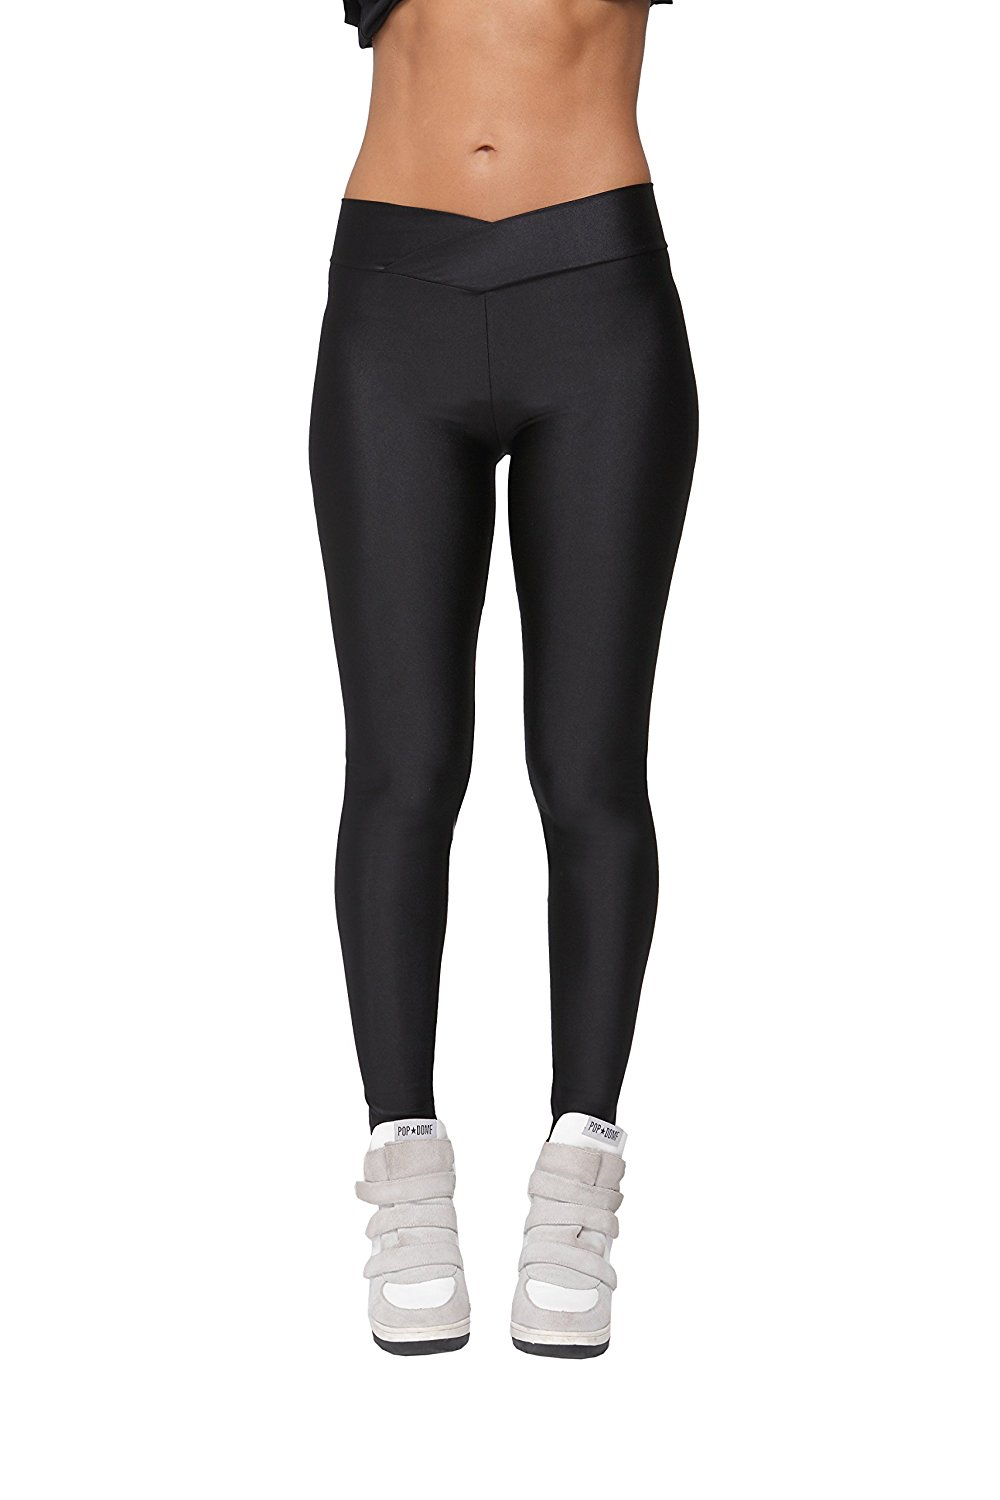 d37c16a6f3f Get Quotations · Yukata Women s Stretch Skinny Shiny Spandex Yoga Leggings  Workout Sports Pants